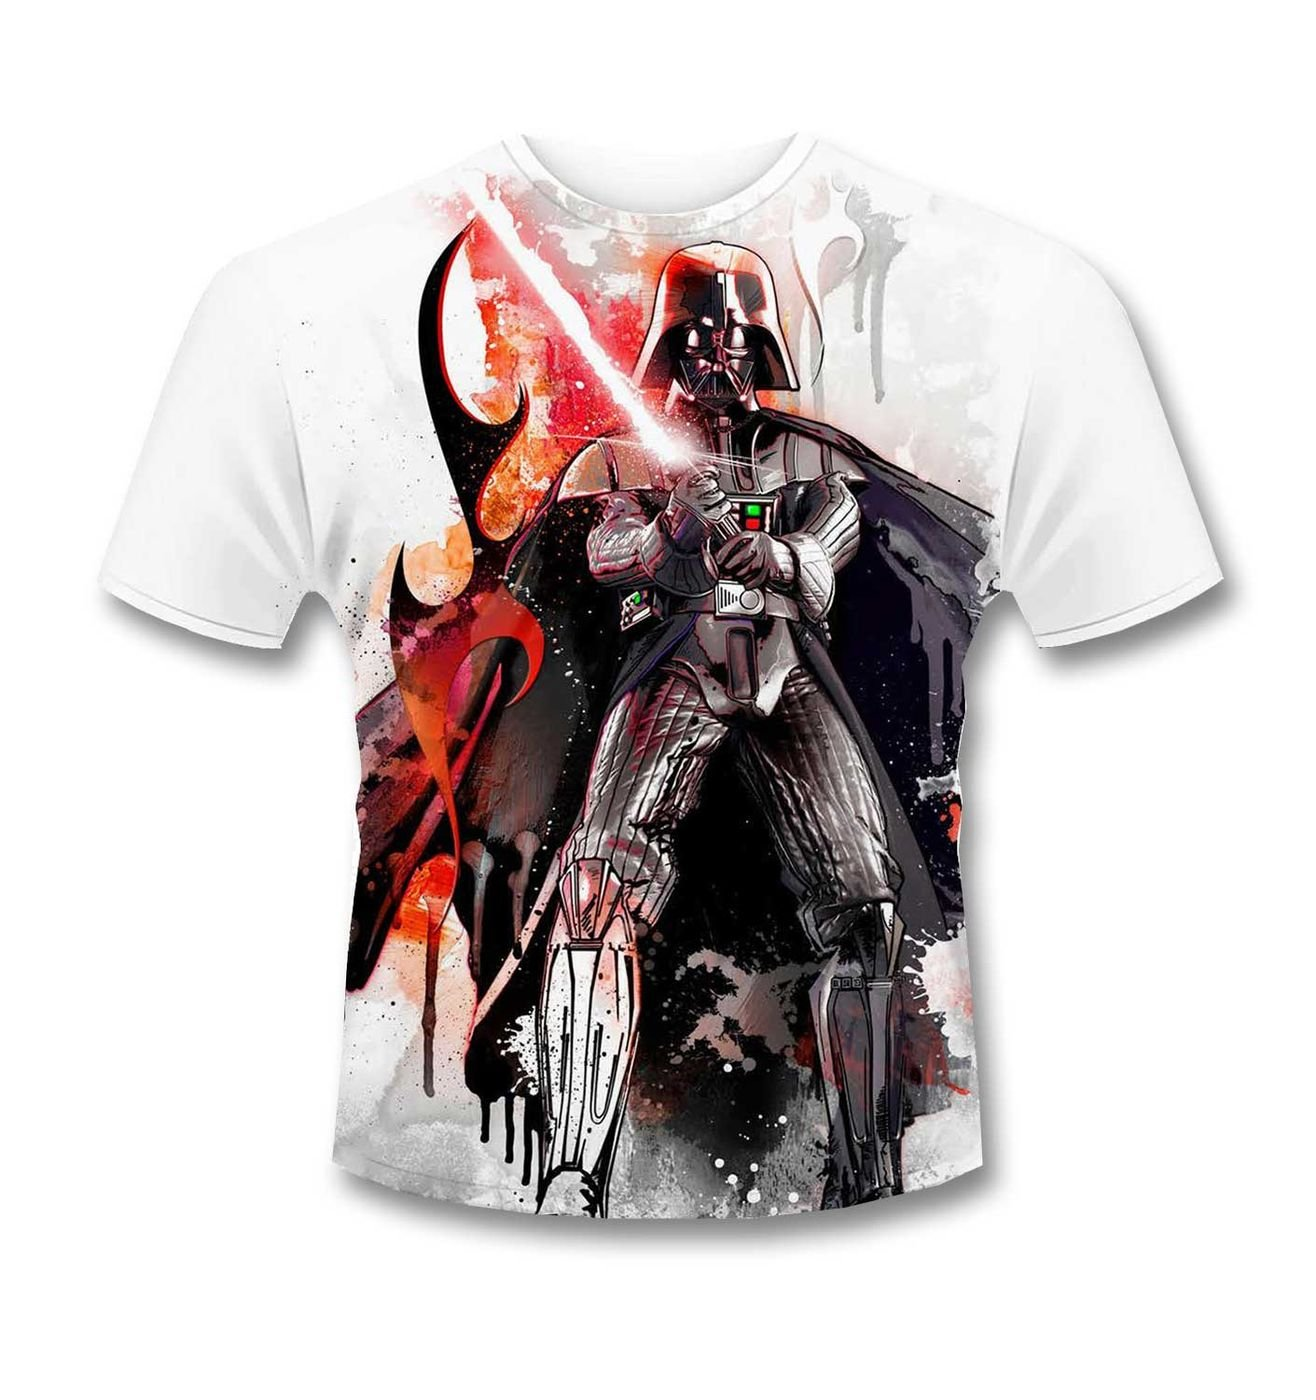 Darth Vader Subdye t-shirt - Official Star Wars merchandise